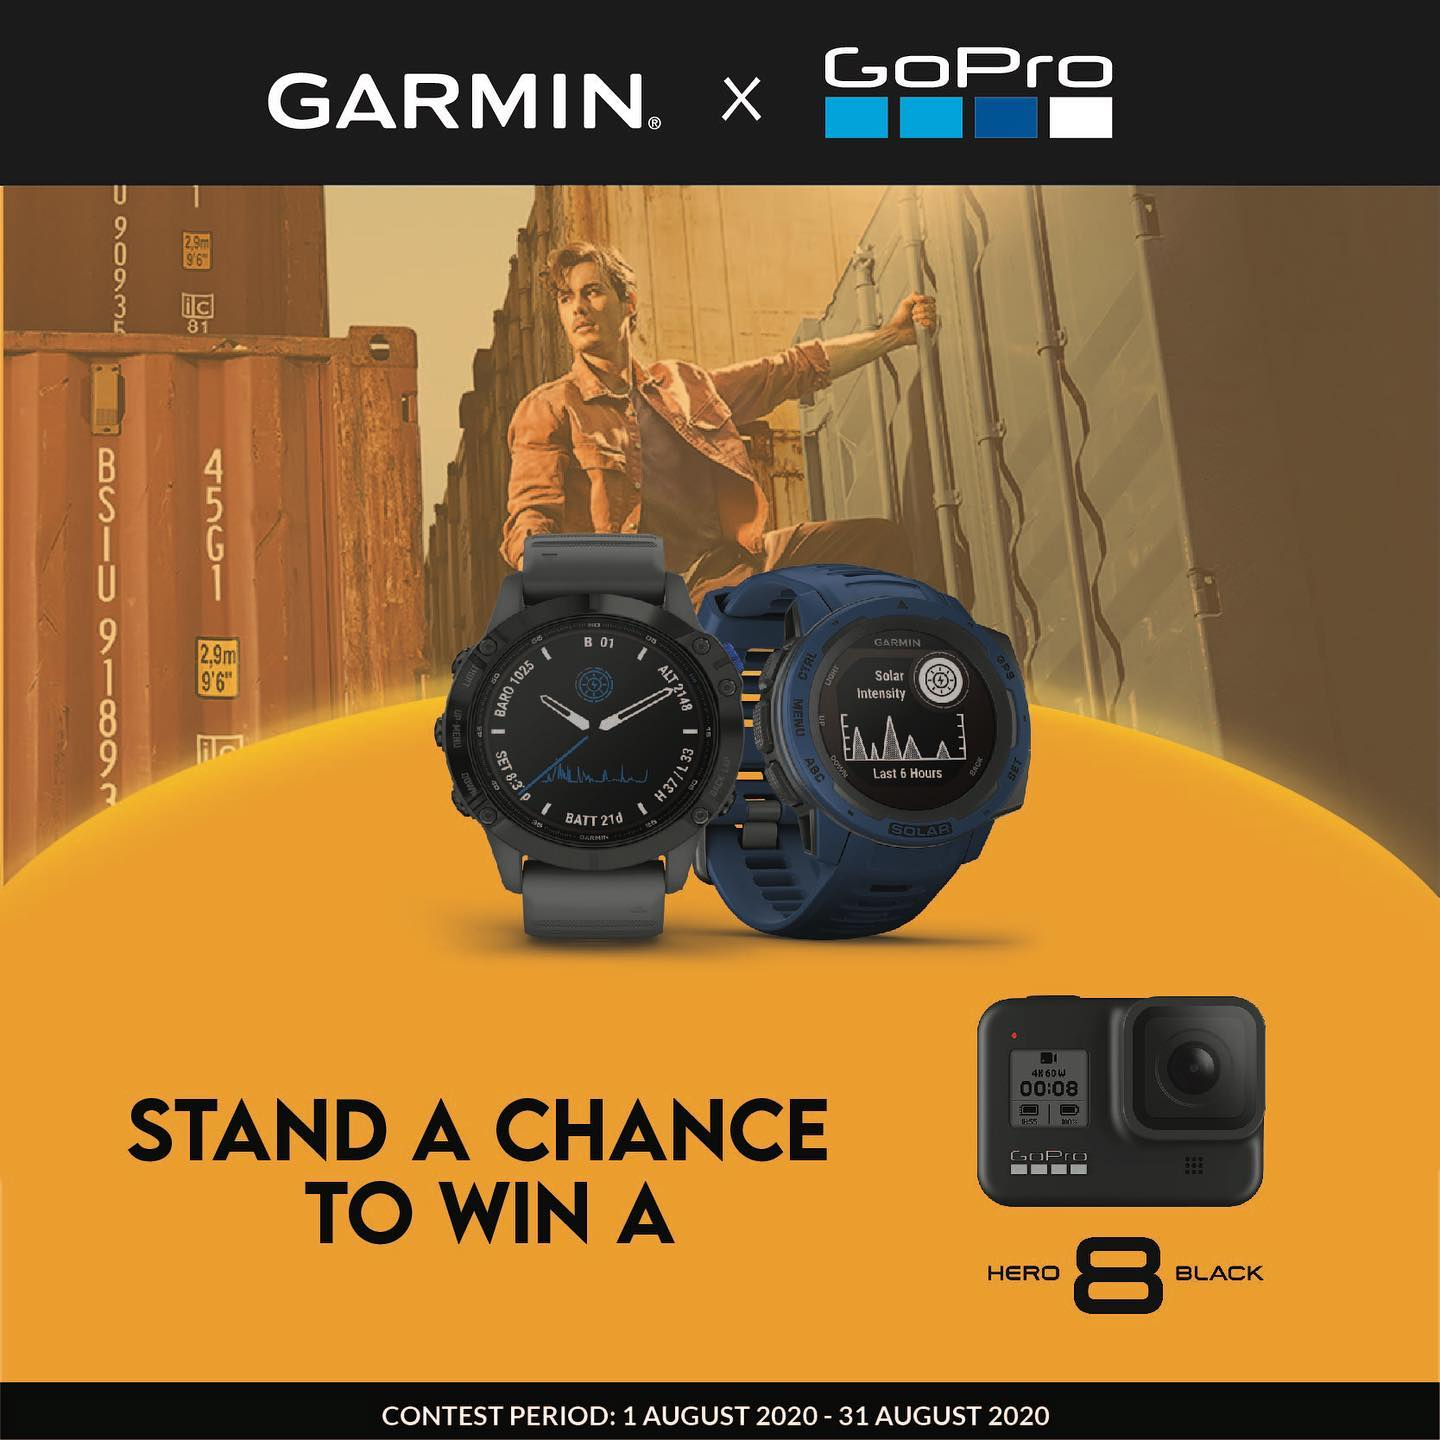 Stand a chance to win a GoPro Hero8 Black.